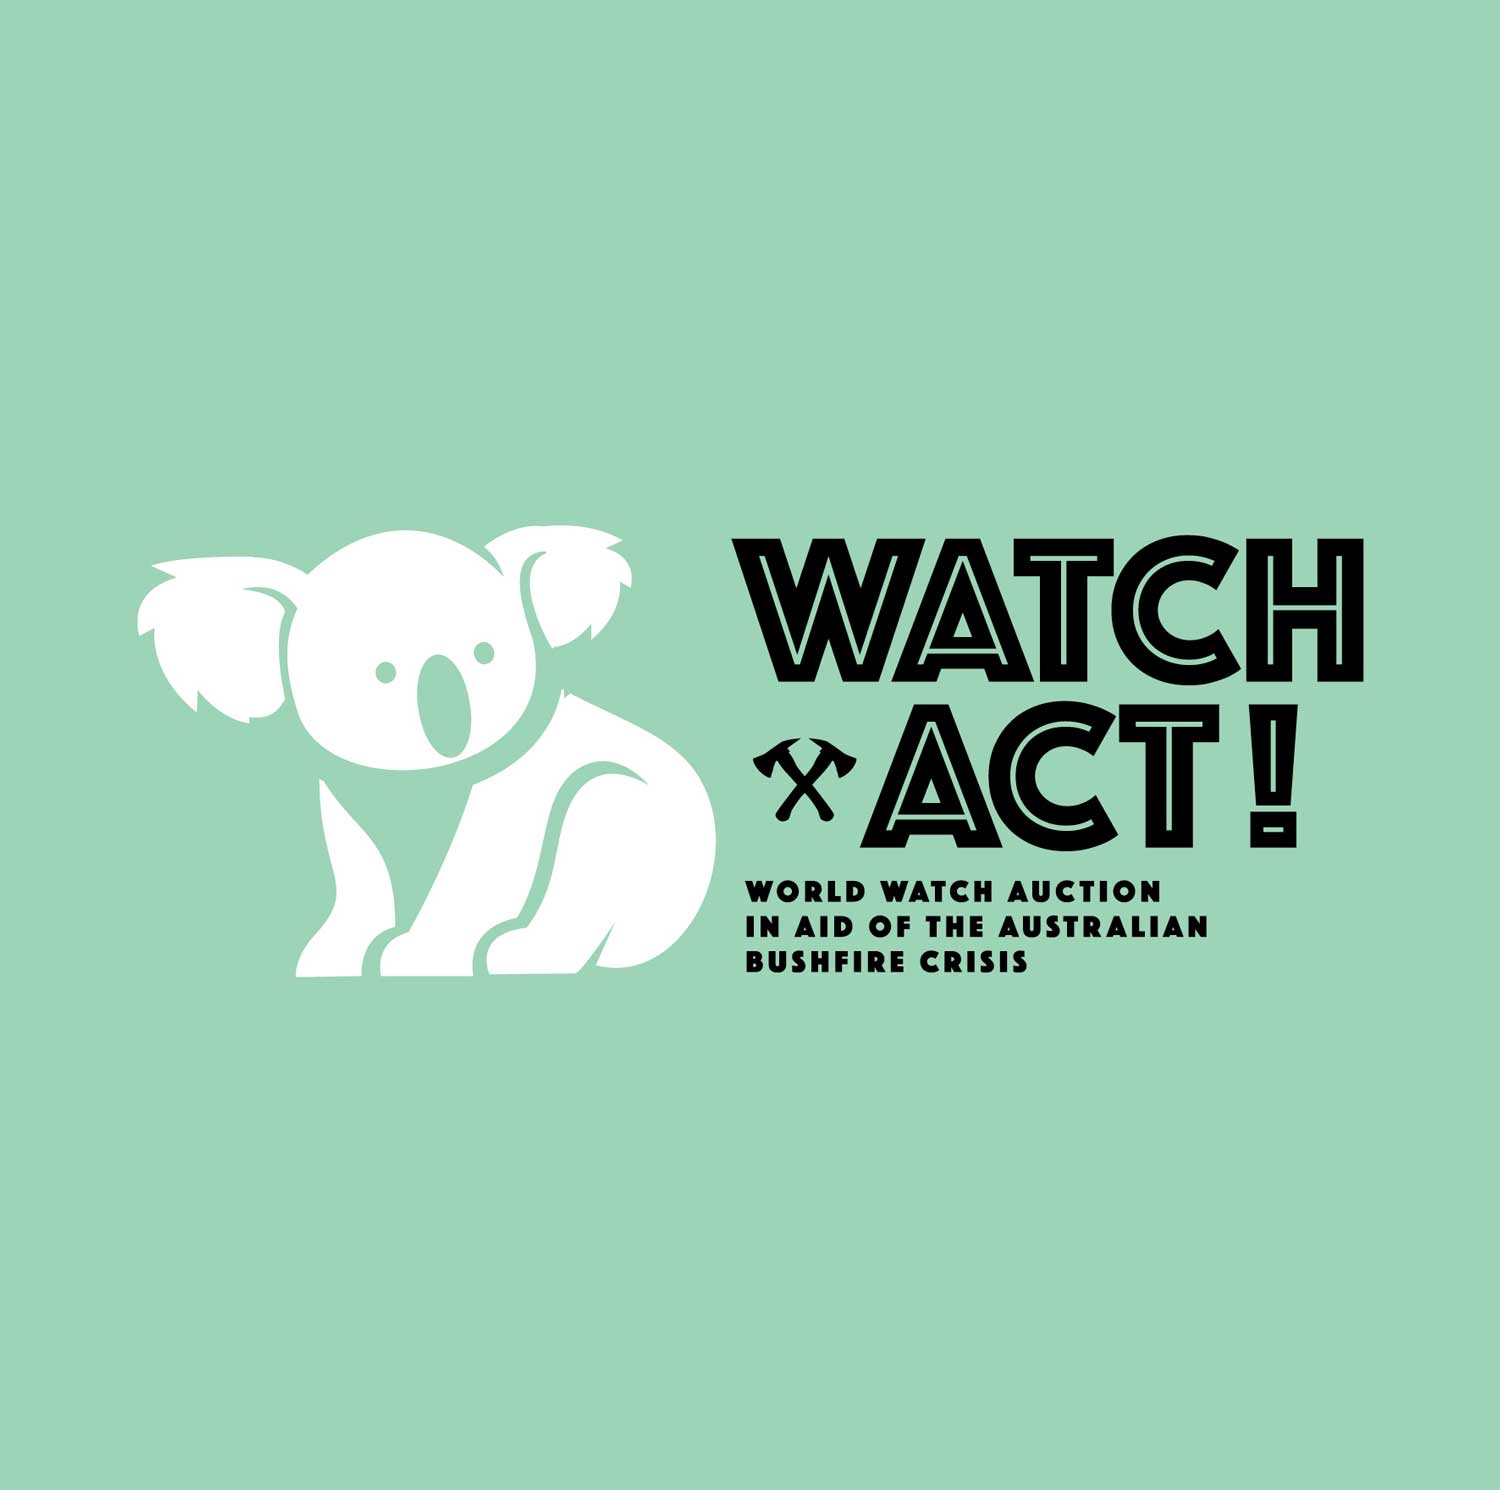 The 'Watch & Act!' World Watch Auction for the Australian bushfires